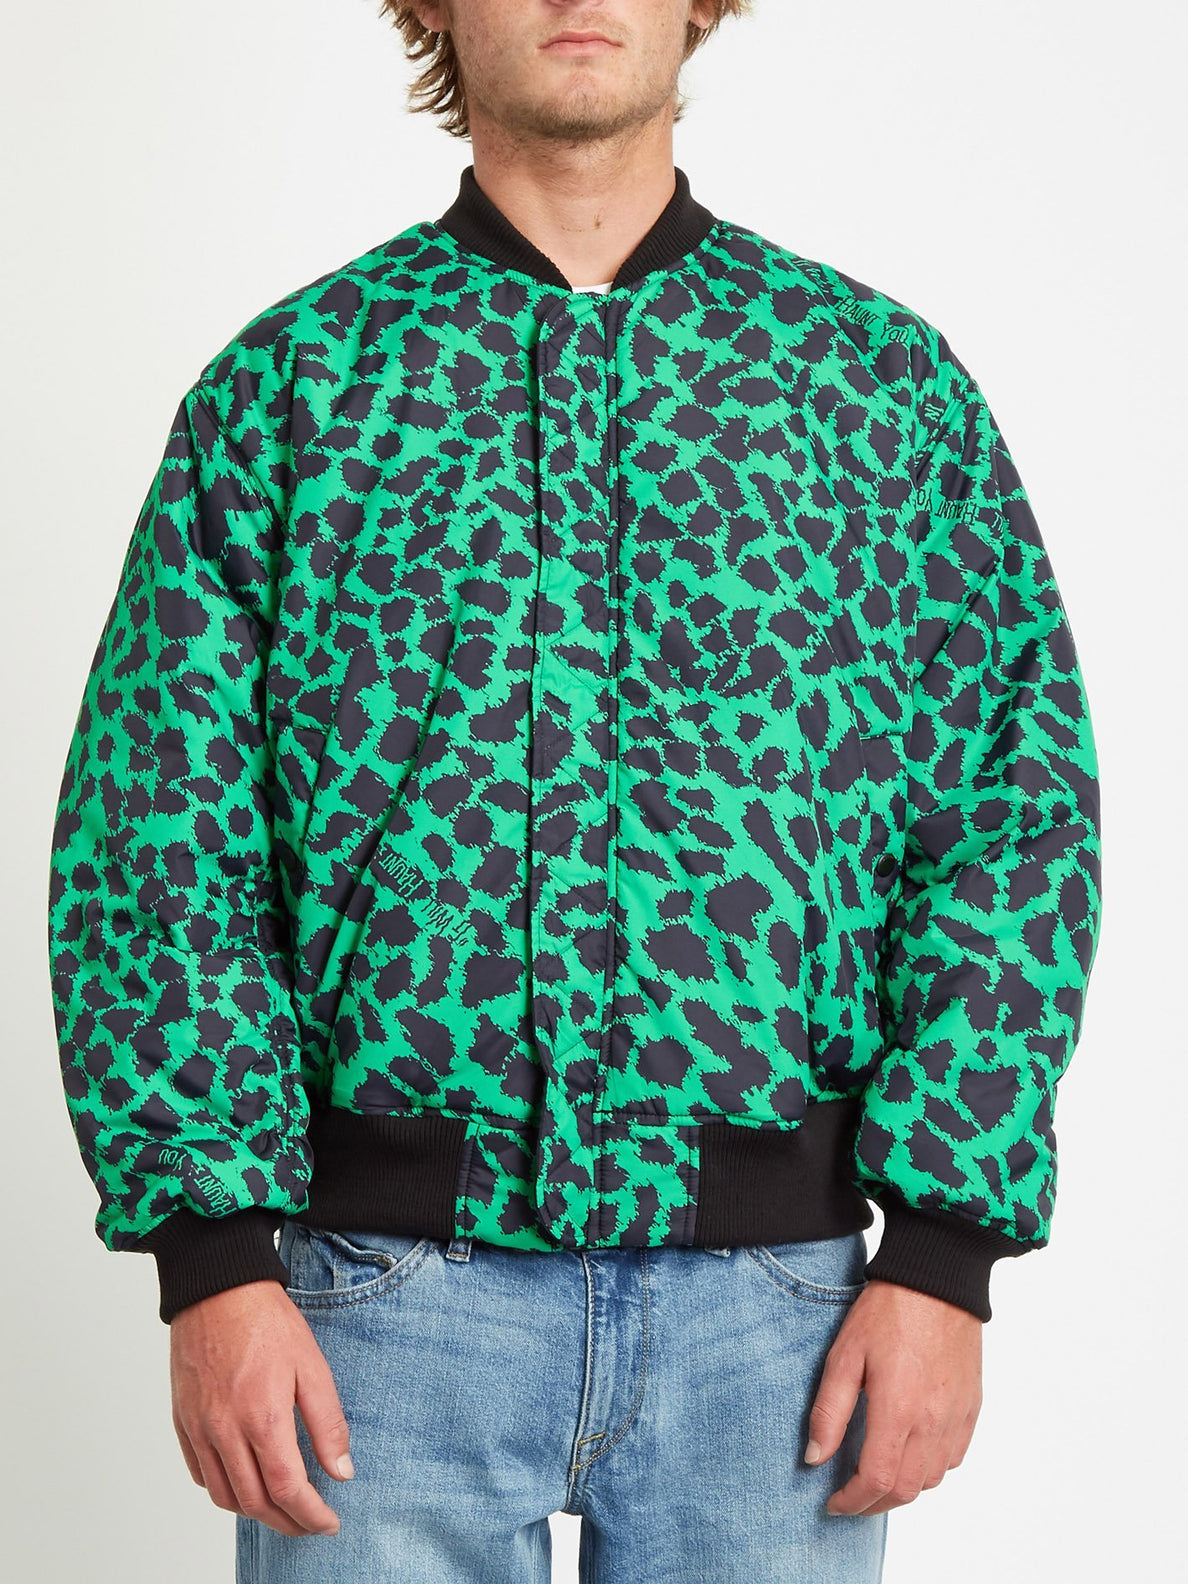 GREENFUZZ JACKET (A1732050_BLK) [7]